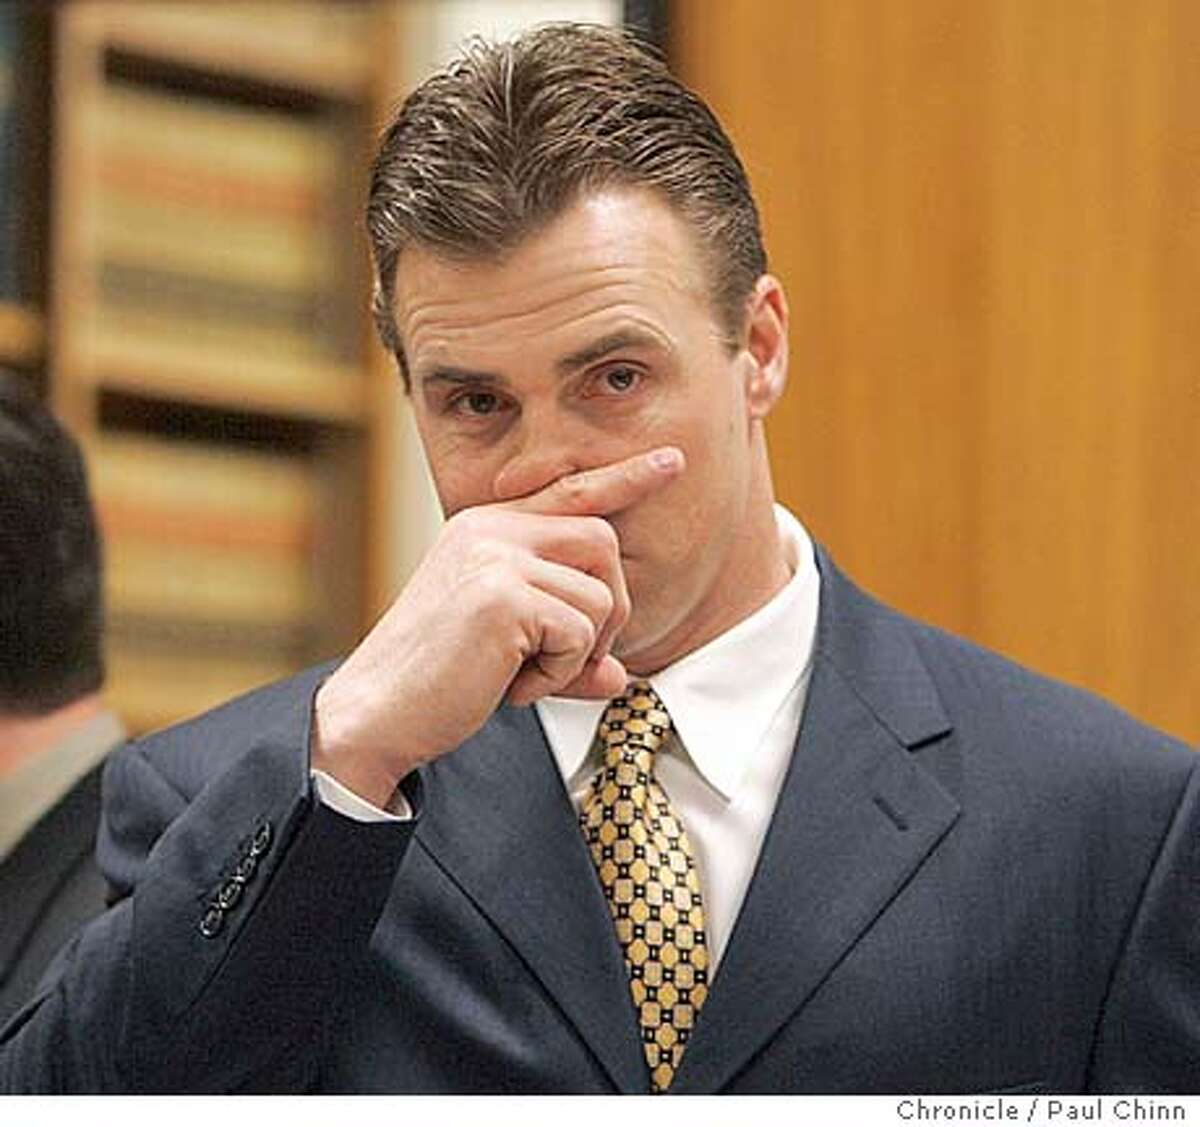 romanowski_047_pc.jpg Bill Romanowski conferred with his team of attorneys before the trail started. Opening statements in the civil trial against former Oakland Raiders player Bill Romanowski on 3/1/05 in Oakland, CA. Former teammate Marcus Williams filed a $3.8 million lawsuit against Romanowski after a practice field fight severly injured Williams. PAUL CHINN/The Chronicle MANDATORY CREDIT FOR PHOTOG AND S.F. CHRONICLE/ - MAGS OUT